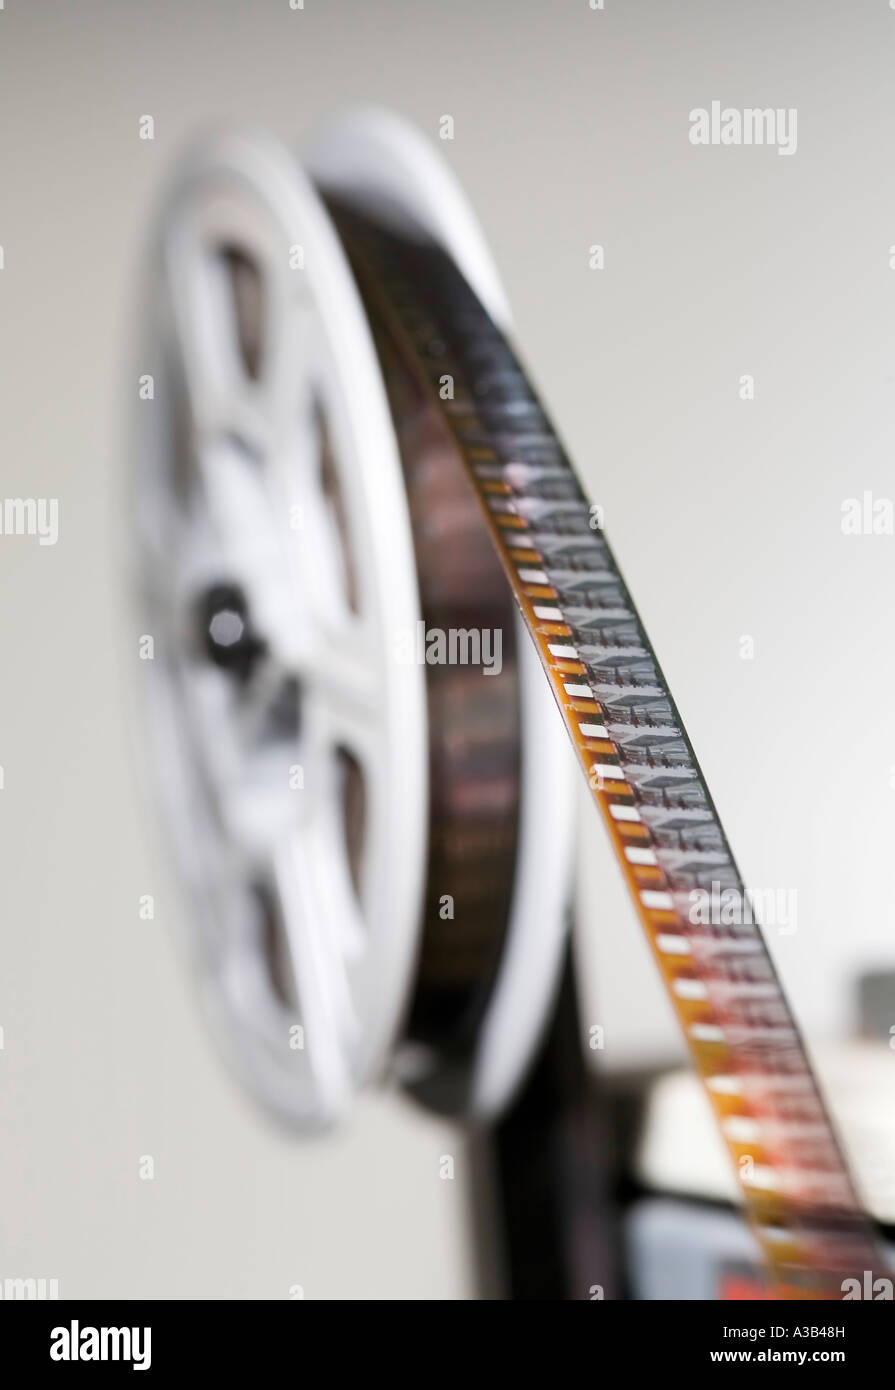 Amateur 8mm cine film on projector reel with shallow depth of field focused on a few frames of film - Stock Image